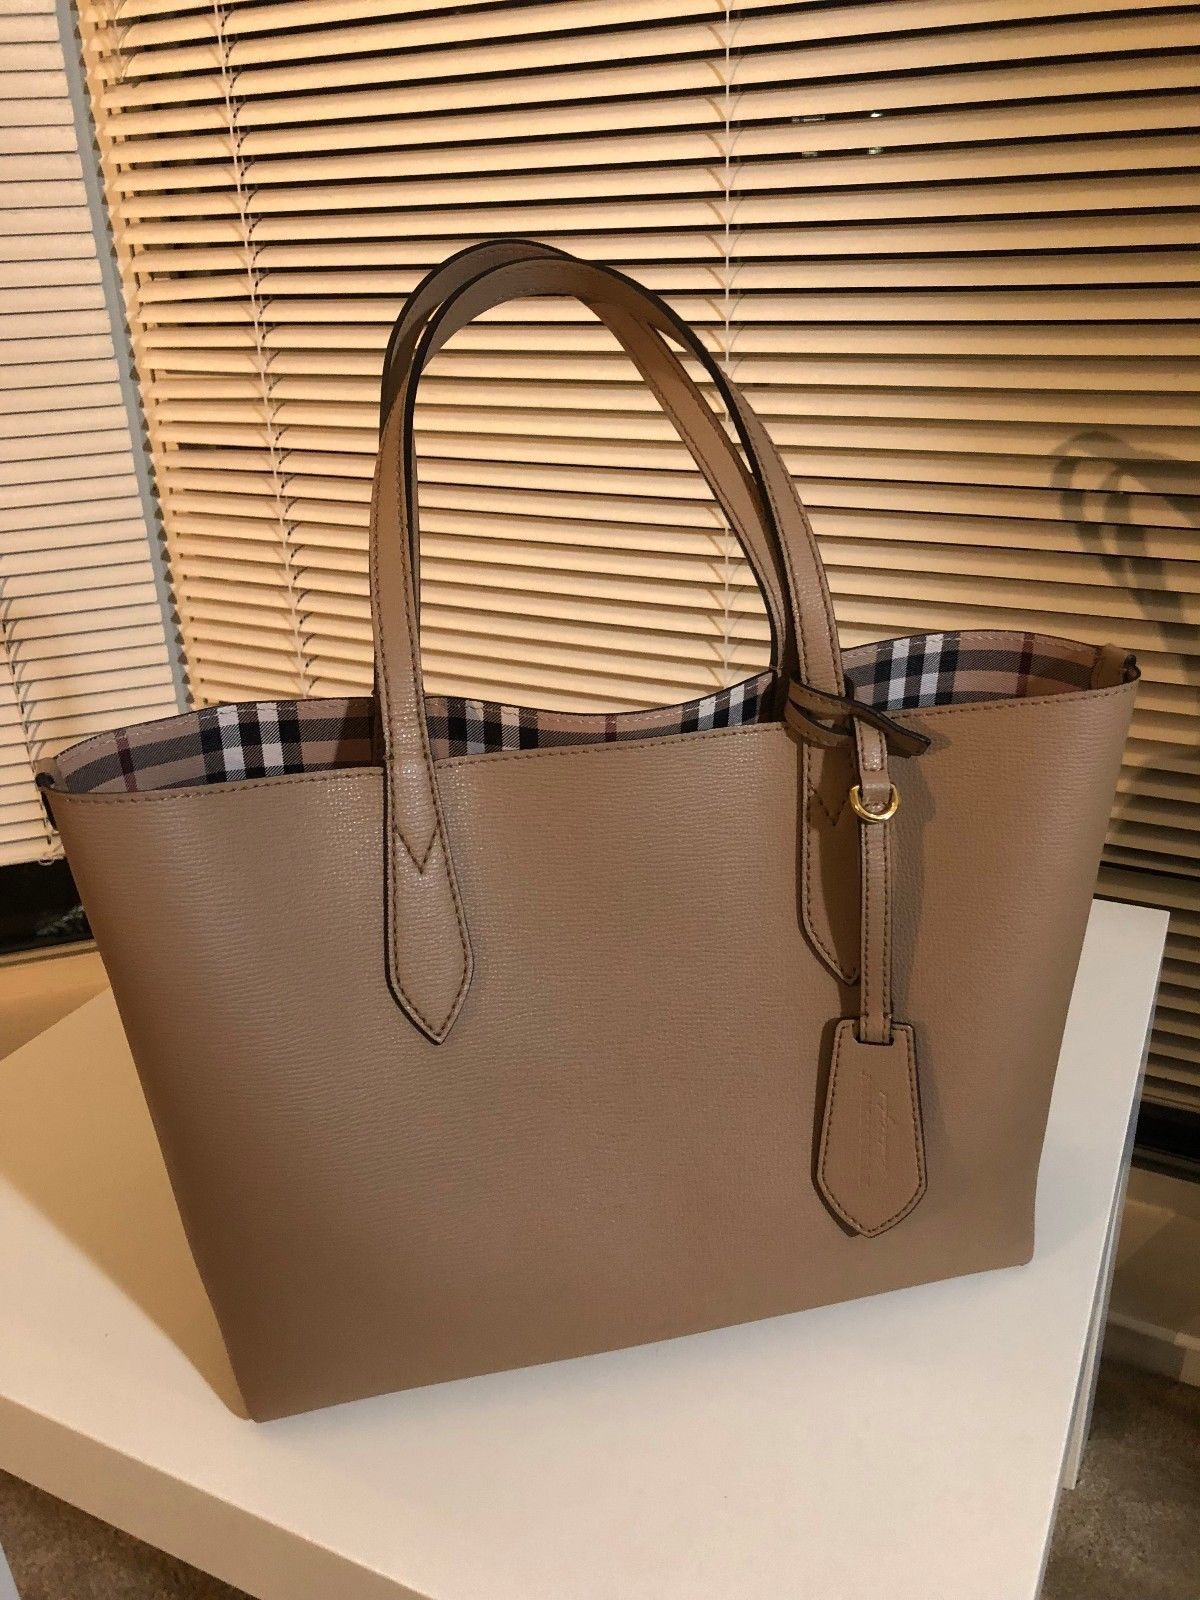 55fbc7ed8bf9 Burberry Reversible Tote Medium Haymarket-Camel (w  Dustbag ...